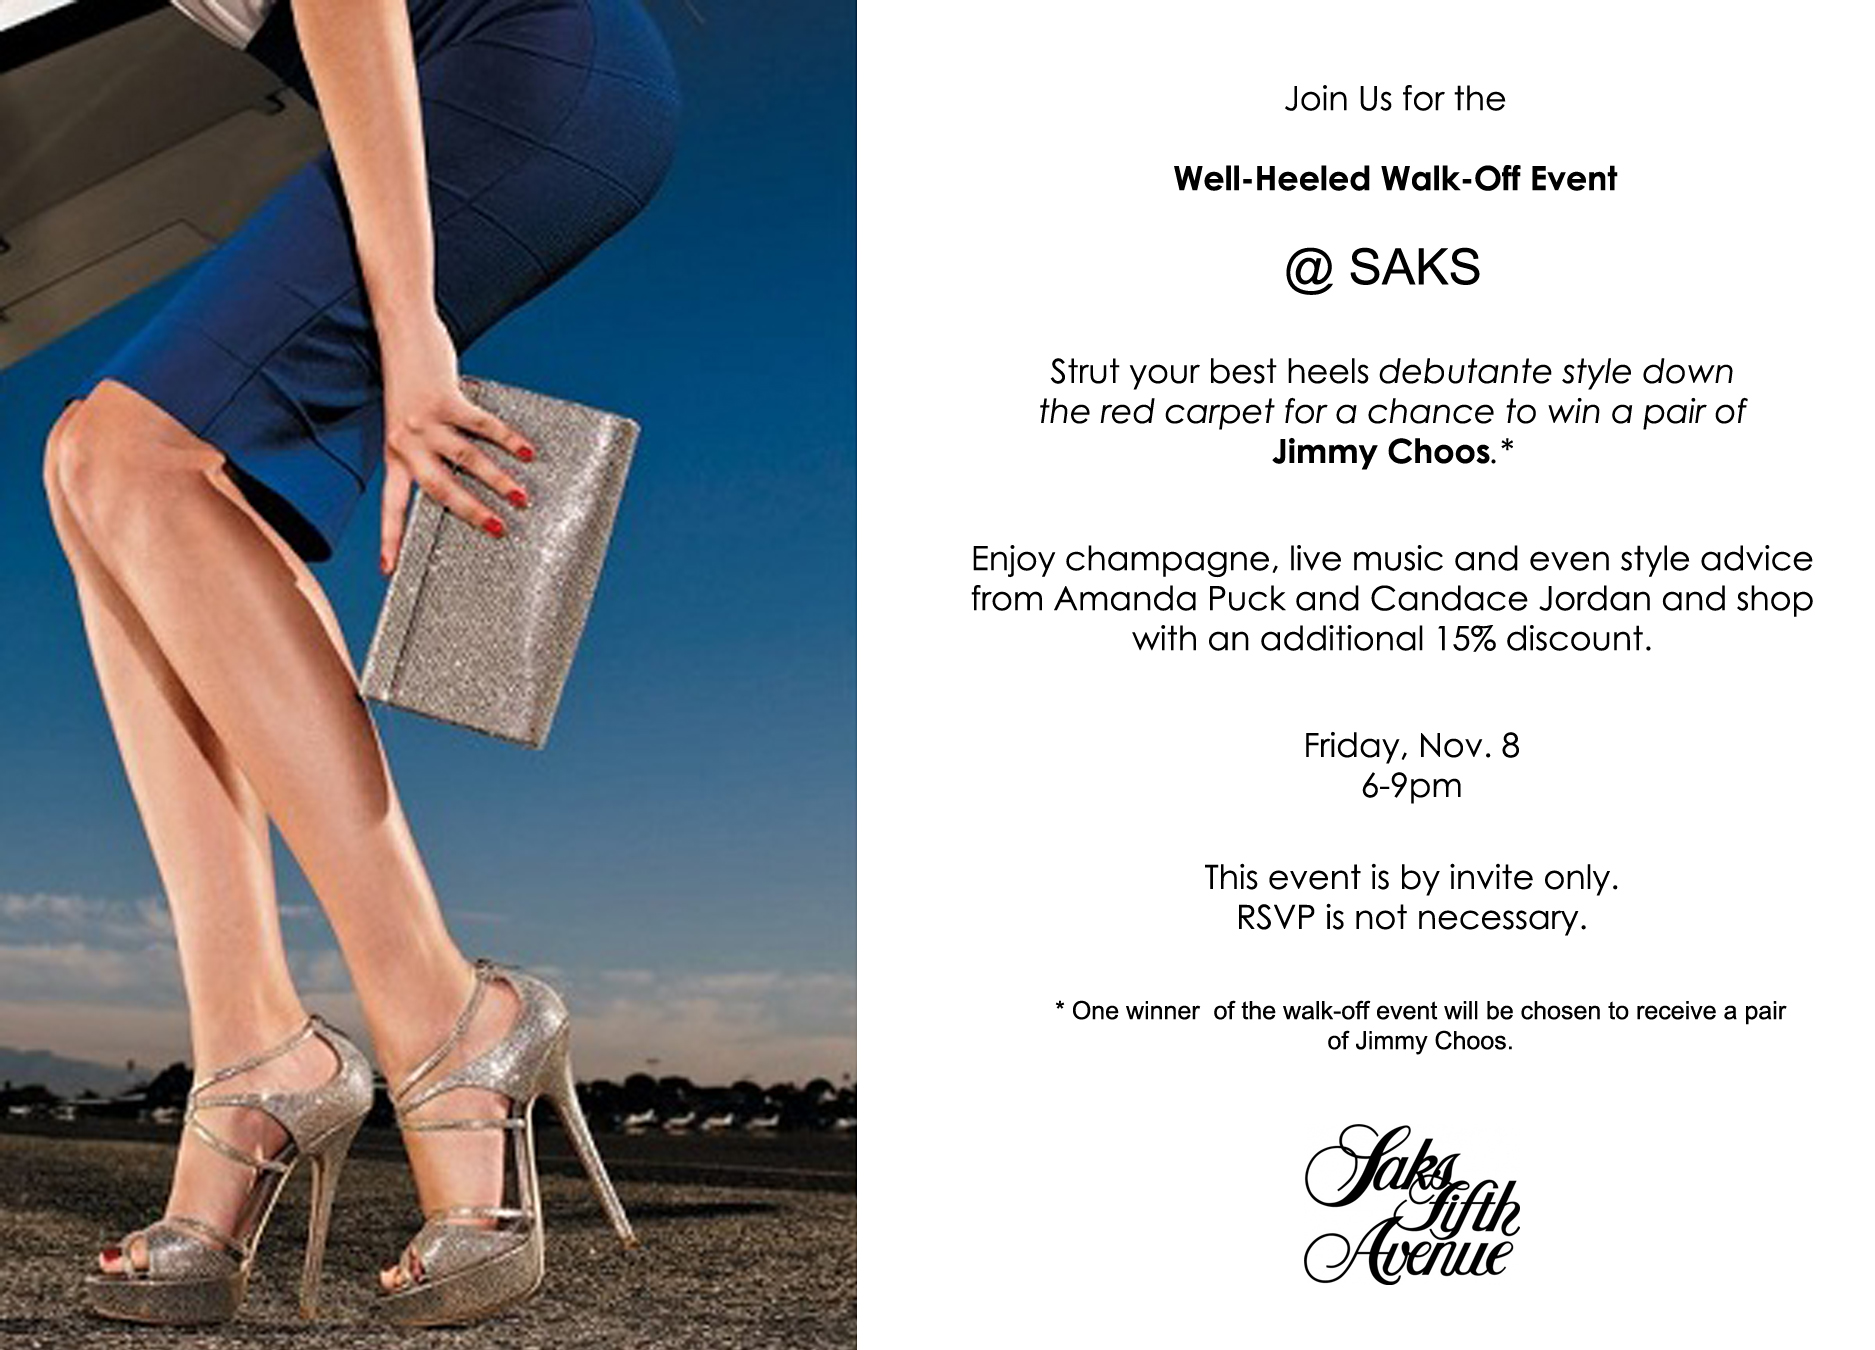 Saks Walk-Off Event flyer